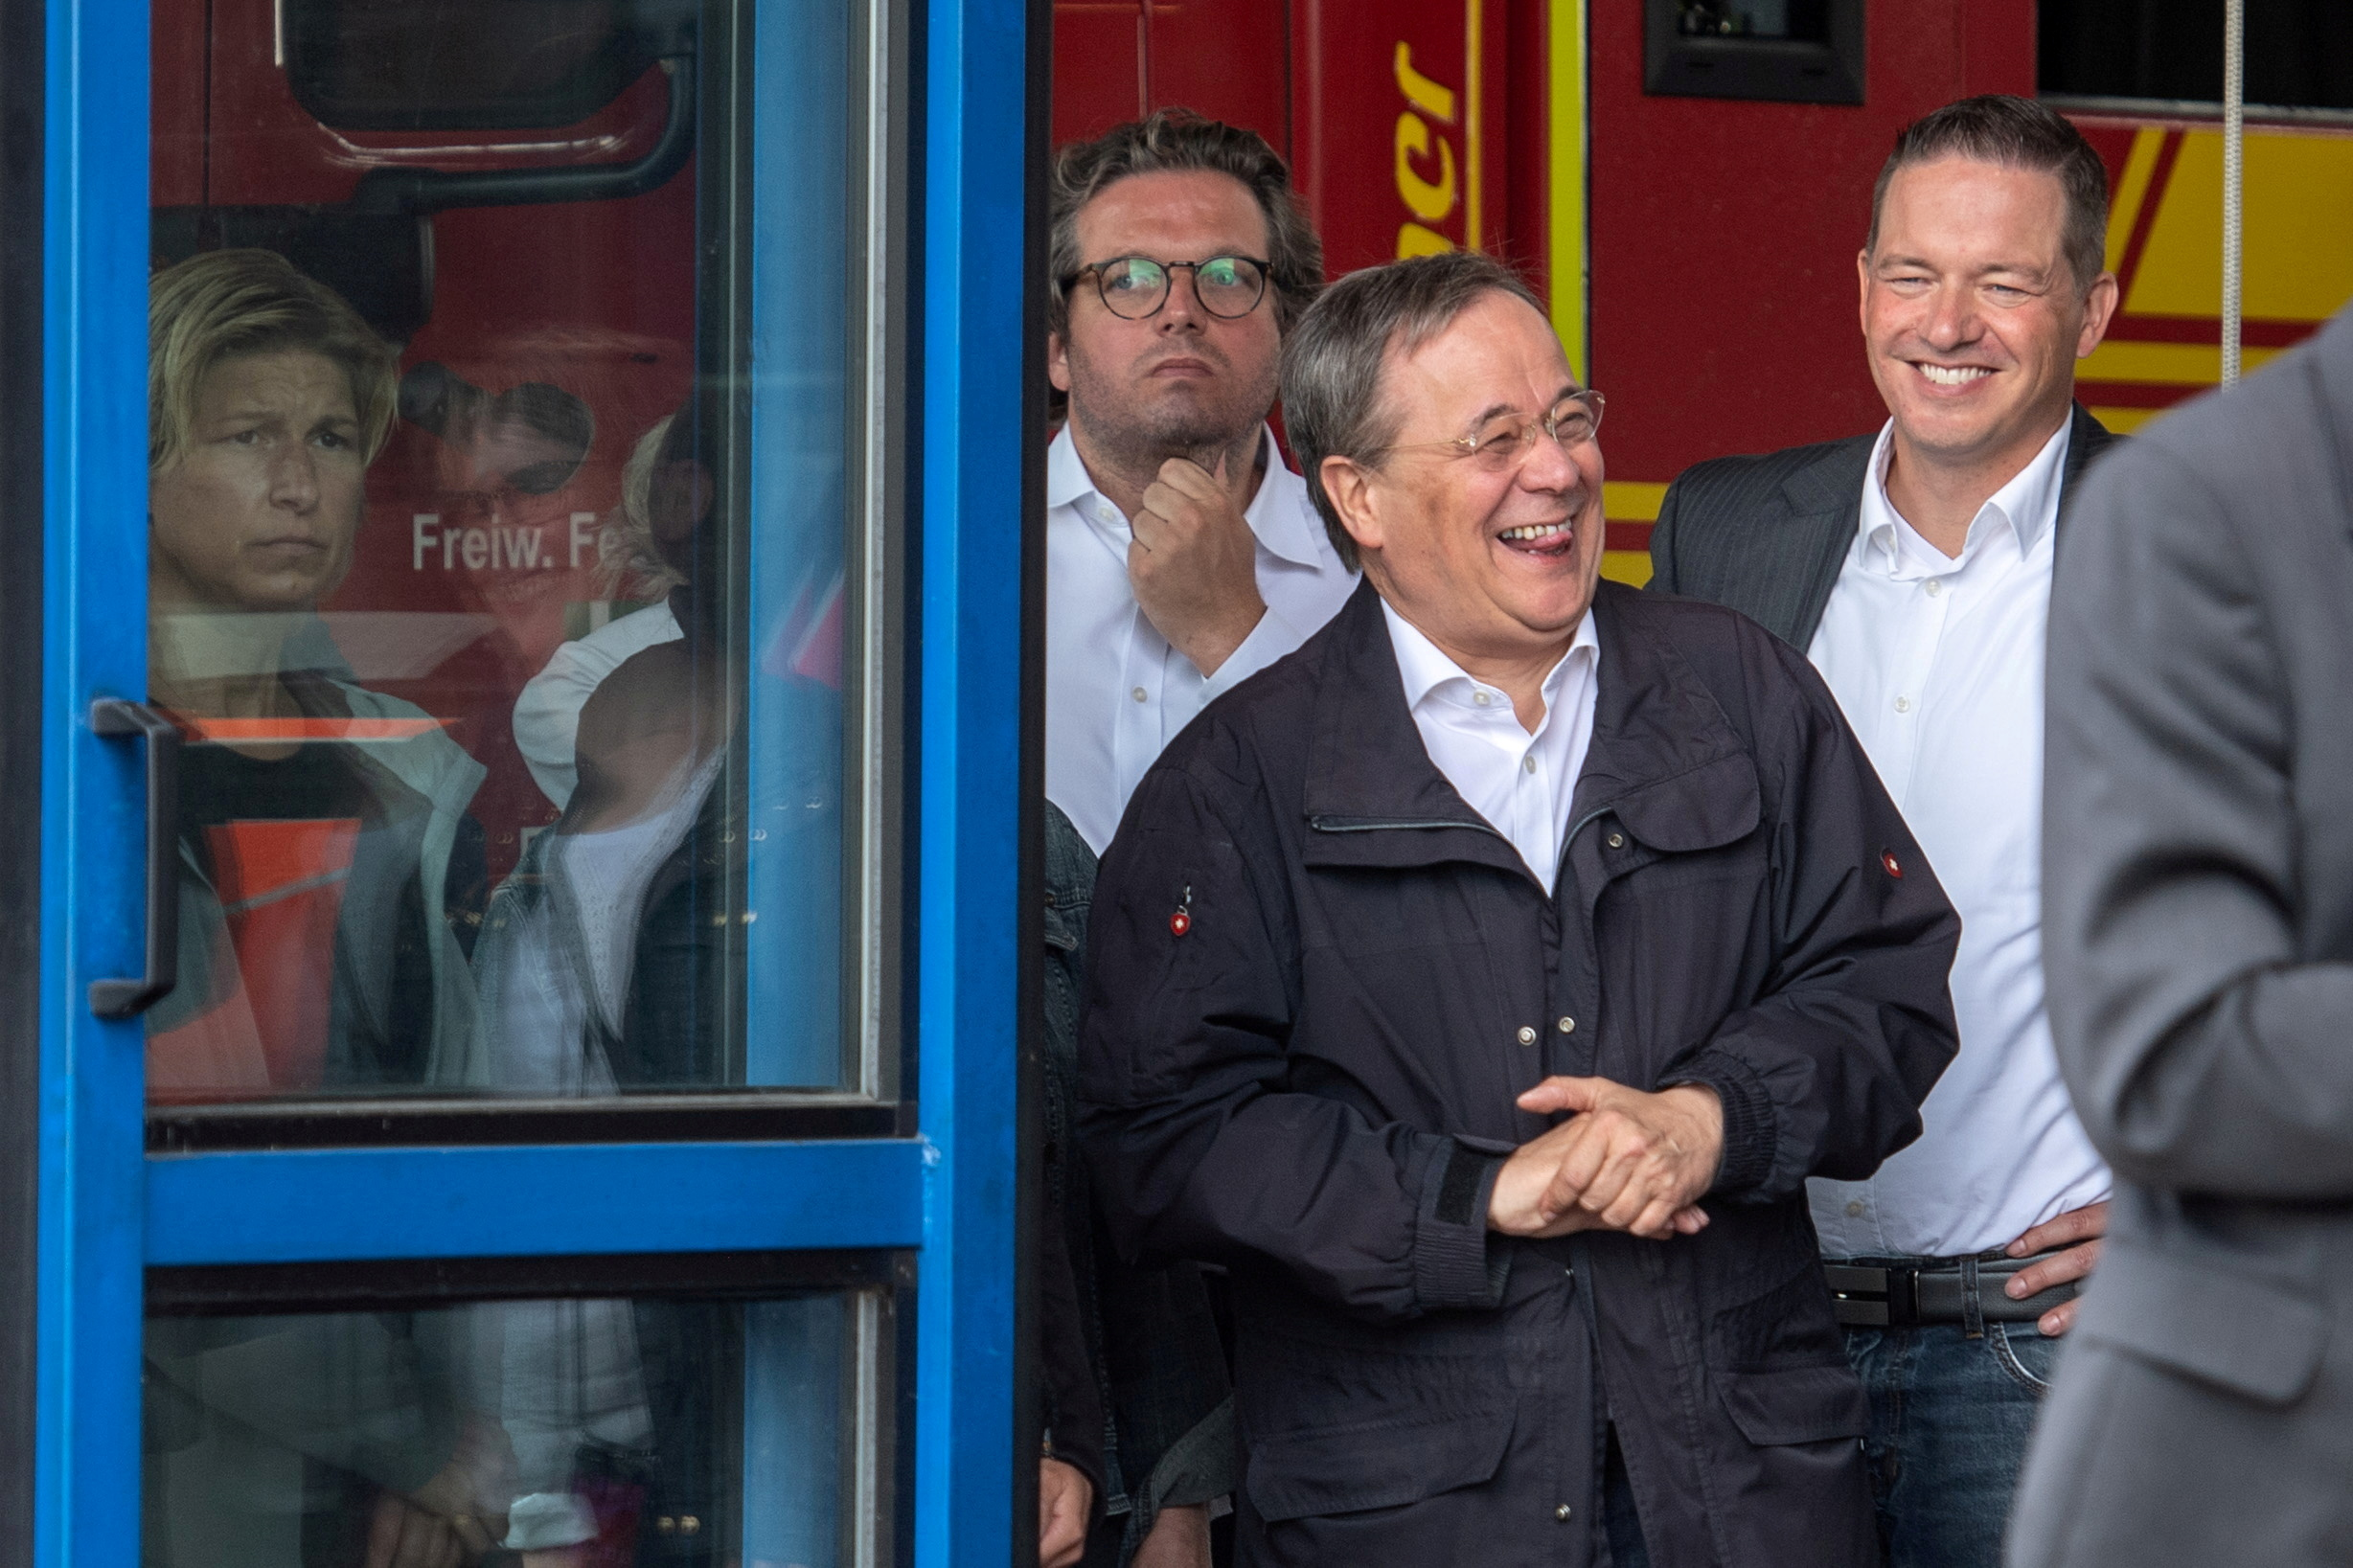 CDU leader and North Rhine-Westphalia's State Premier Armin Laschet laughs as the German president (unseen) delivers a speech during their visit to flood-hit Erftstadt, Germany July 17, 2021. Picture taken July 17, 2021 Marius Becker/Pool/File Photo